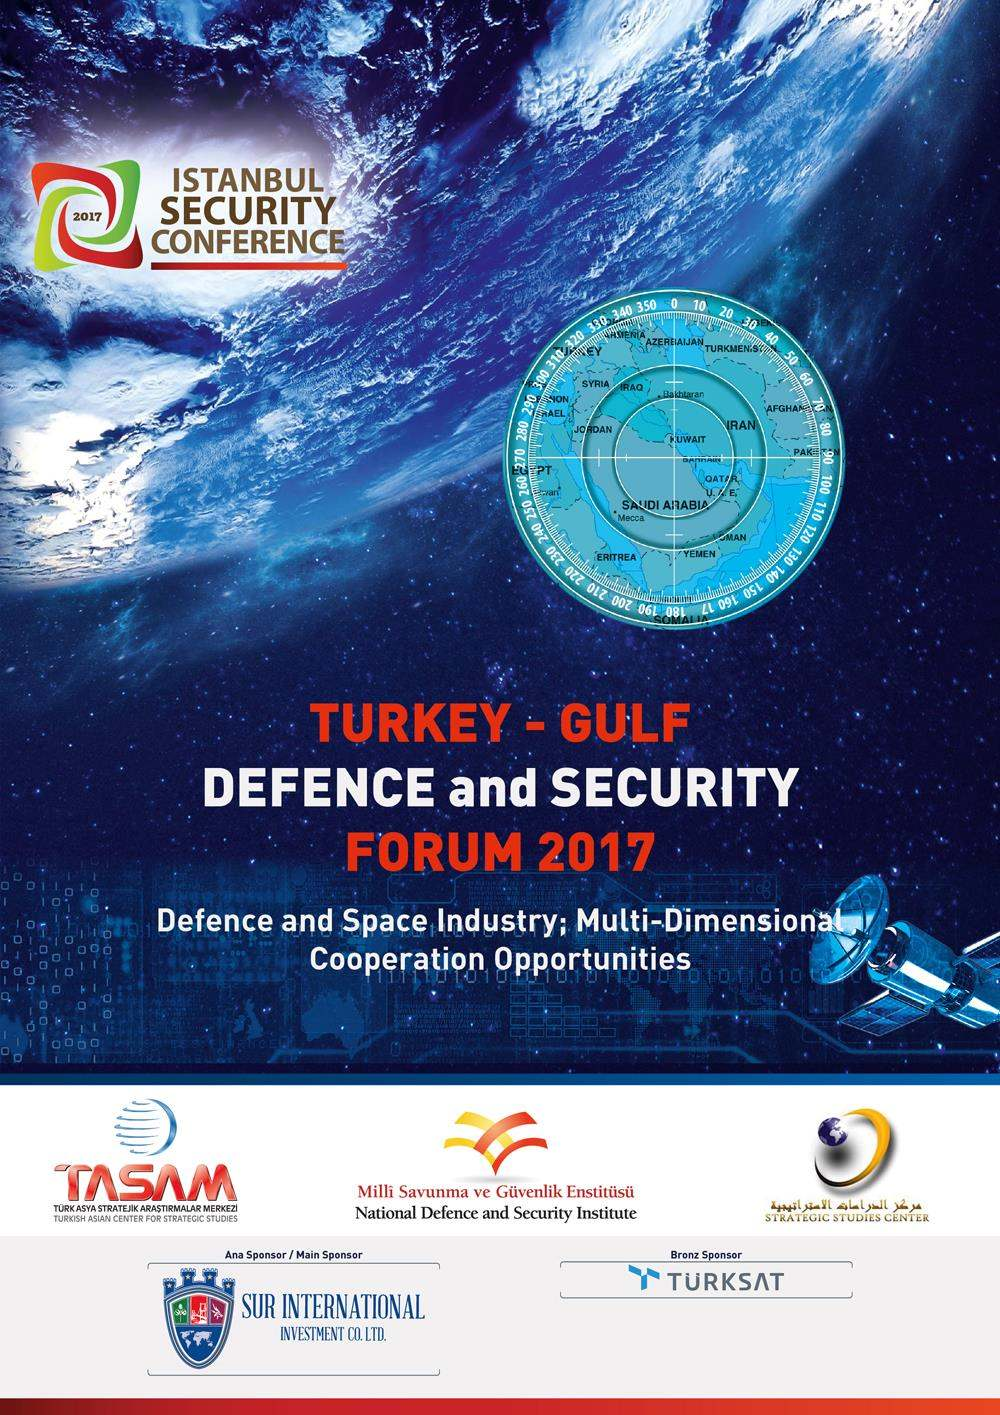 Turkey - Gulf Defence and Security Forum 2017